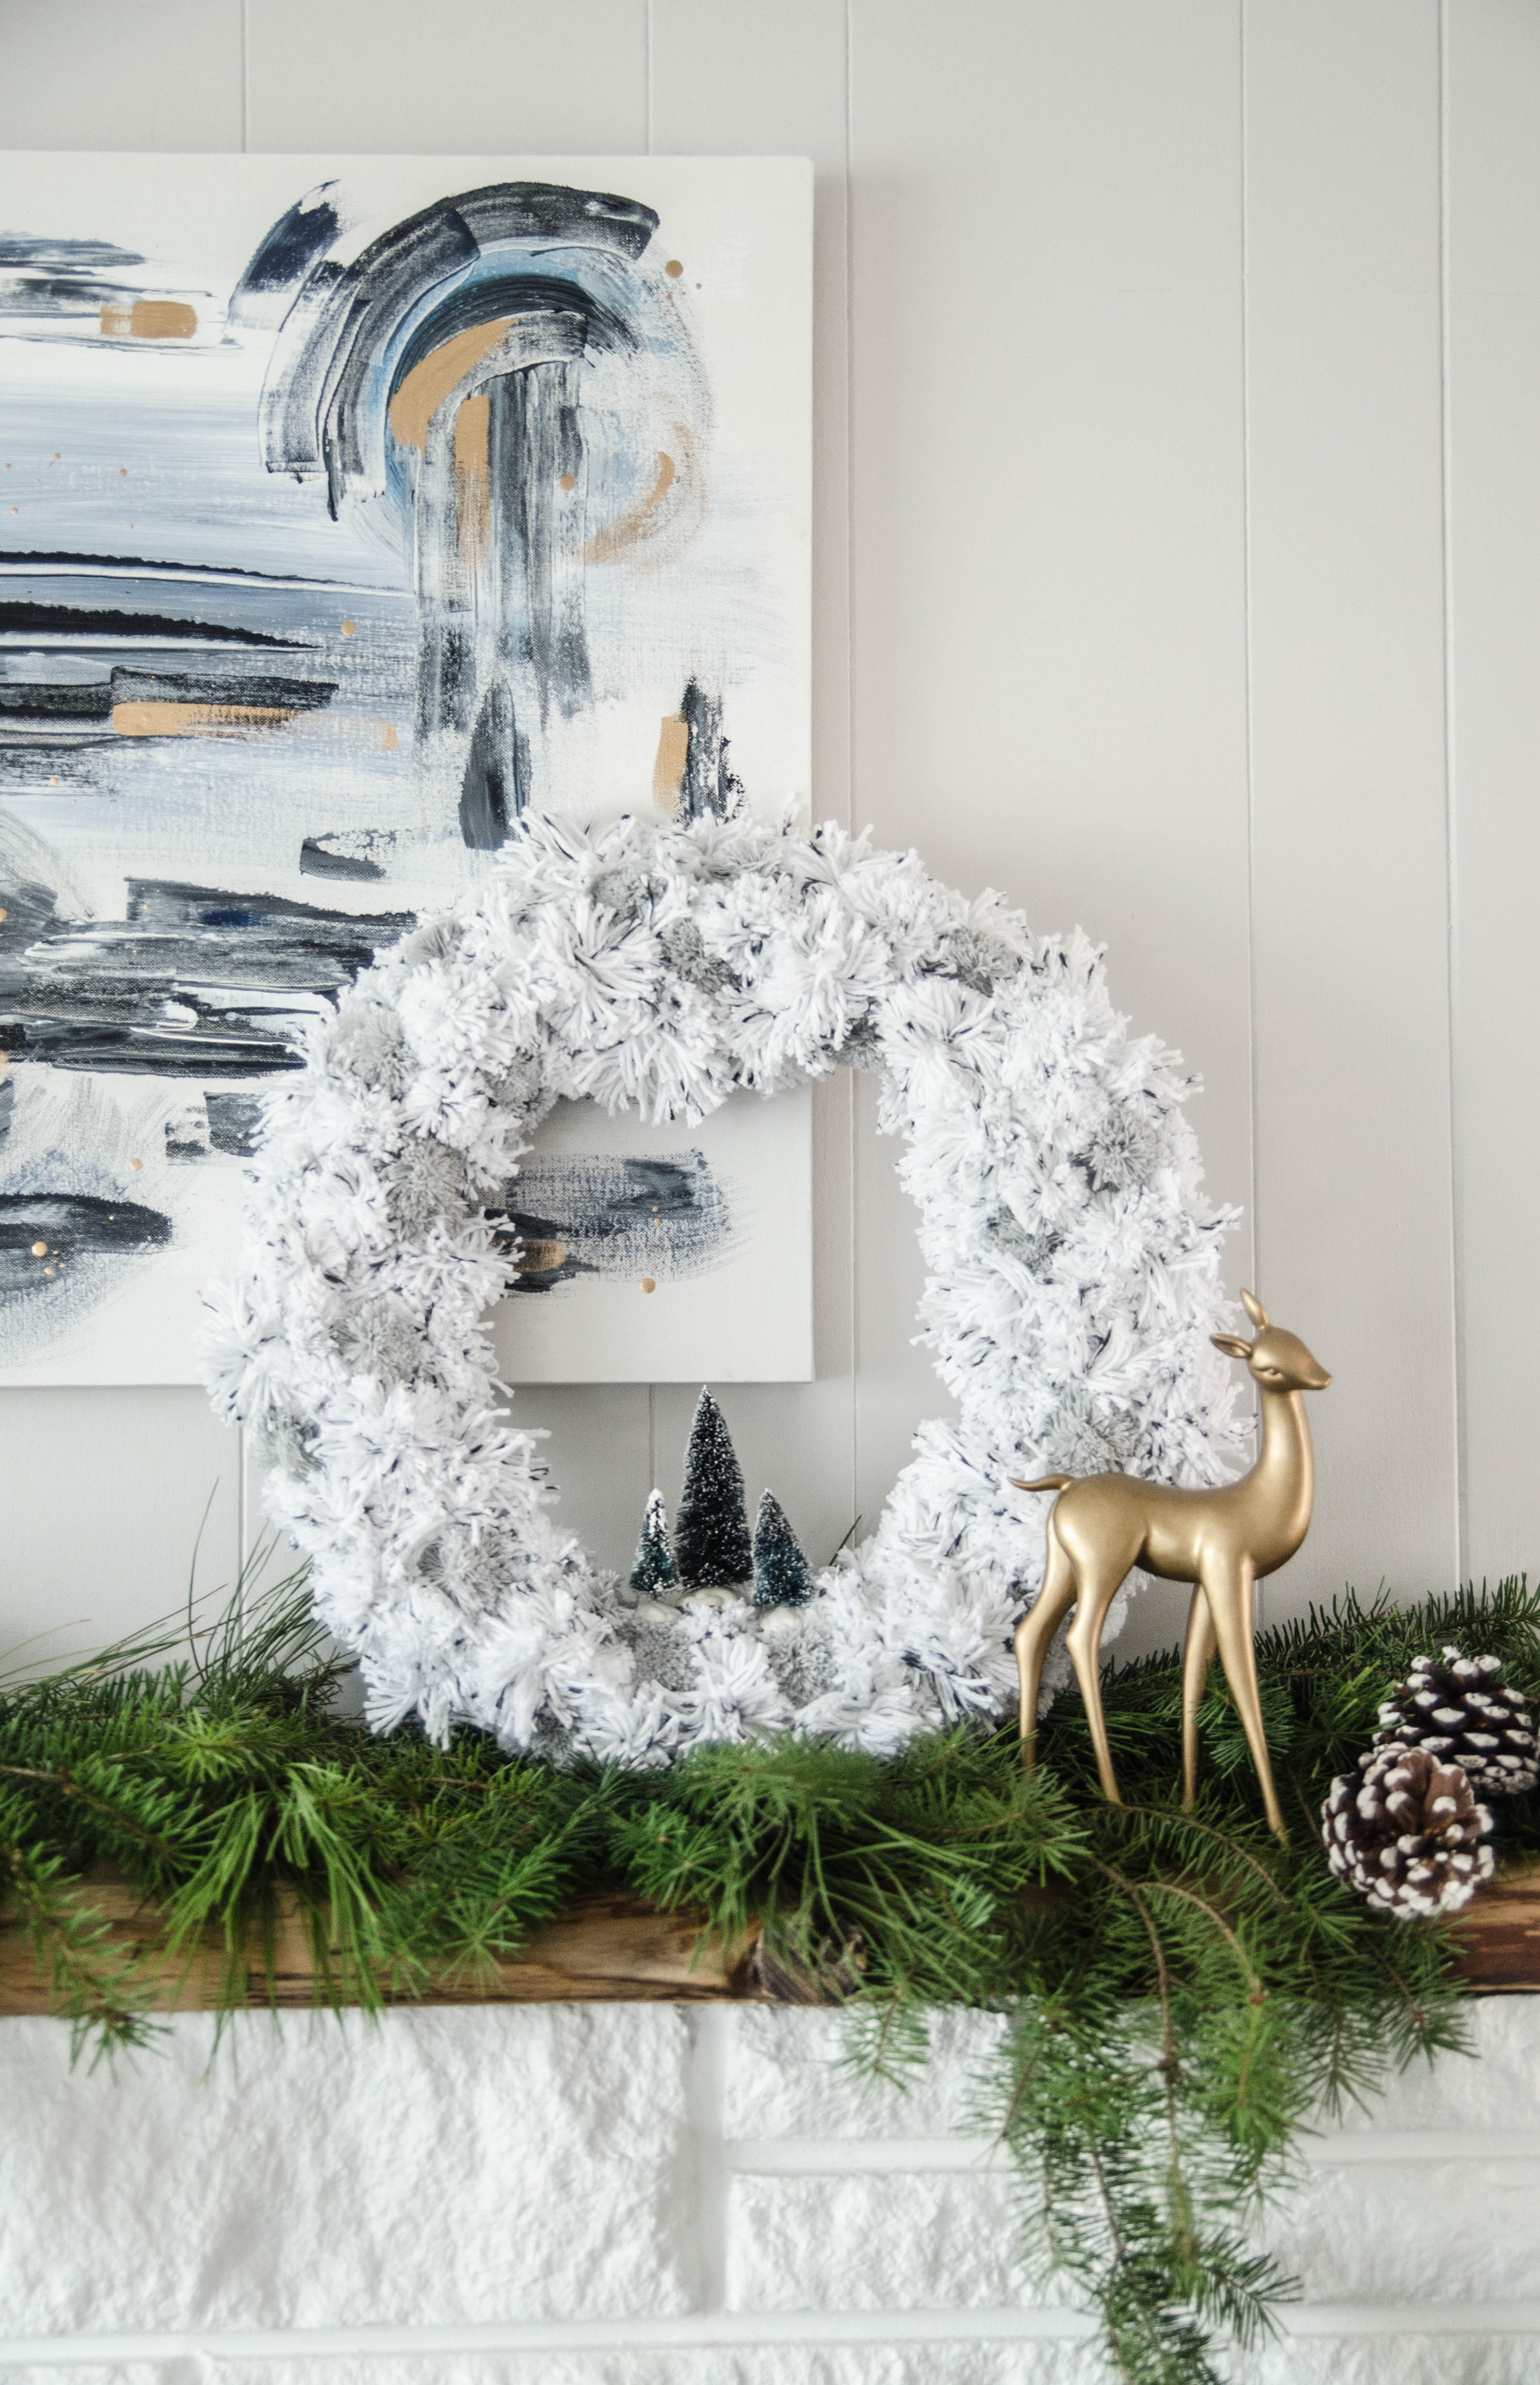 DIY Pom Pom Wreath for the holidays- love the bottle brush trees in there!